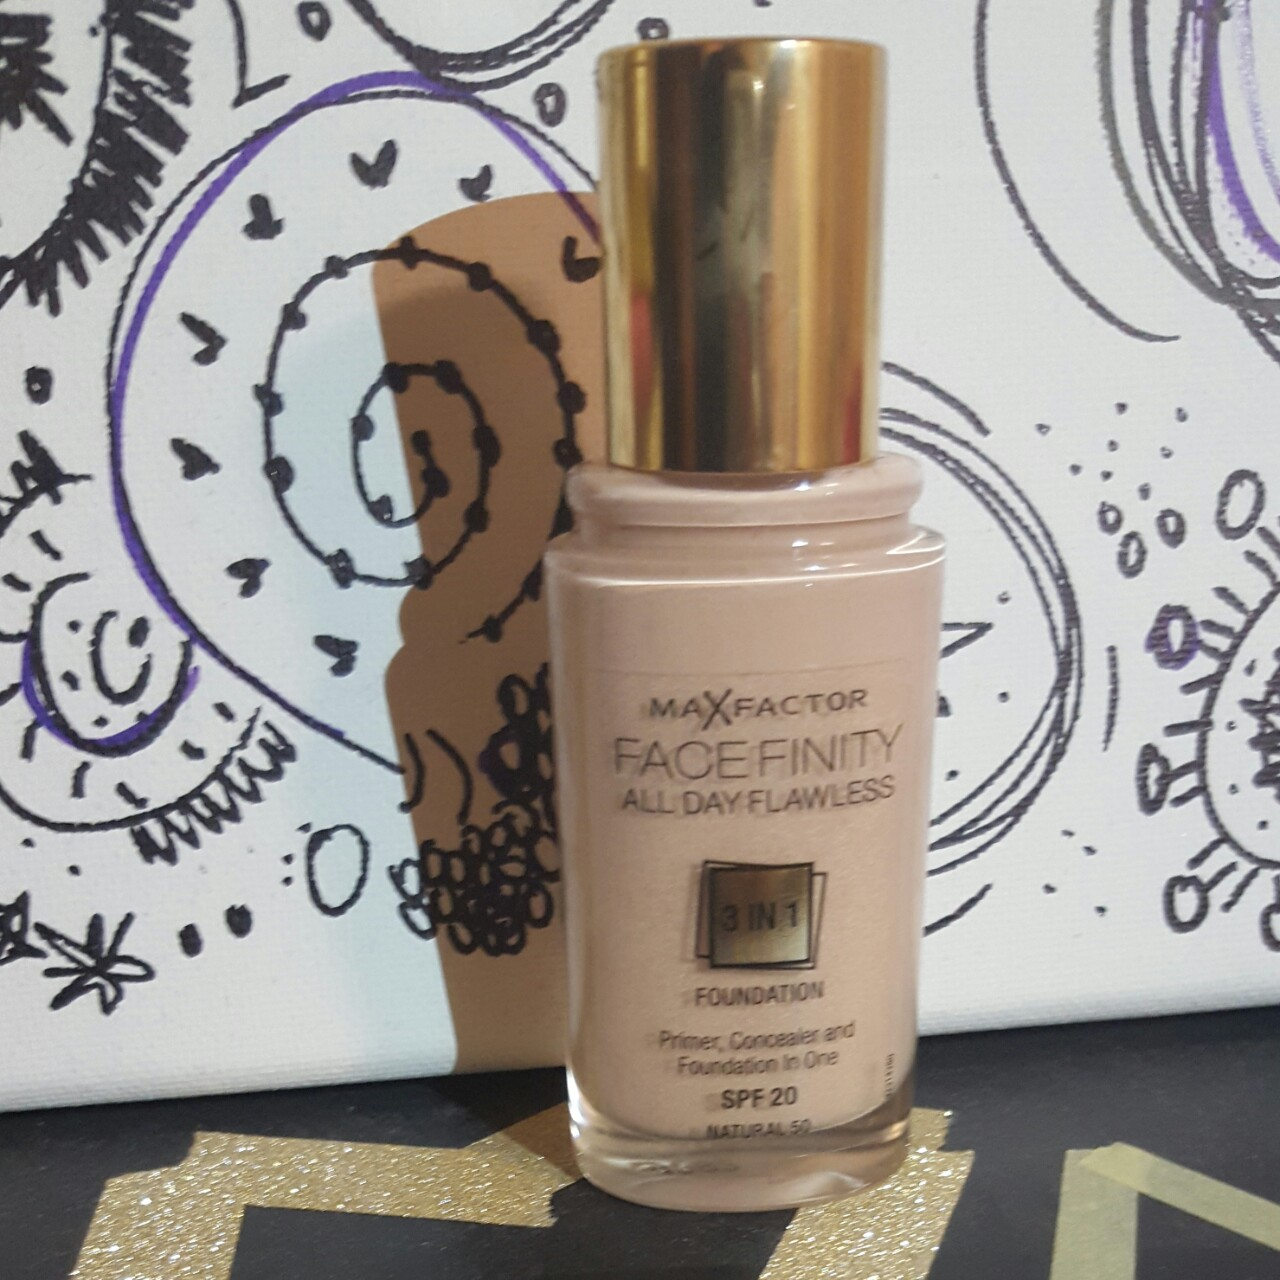 *Max Factor 3 in 1 in the shade Natural 50 with SPF...